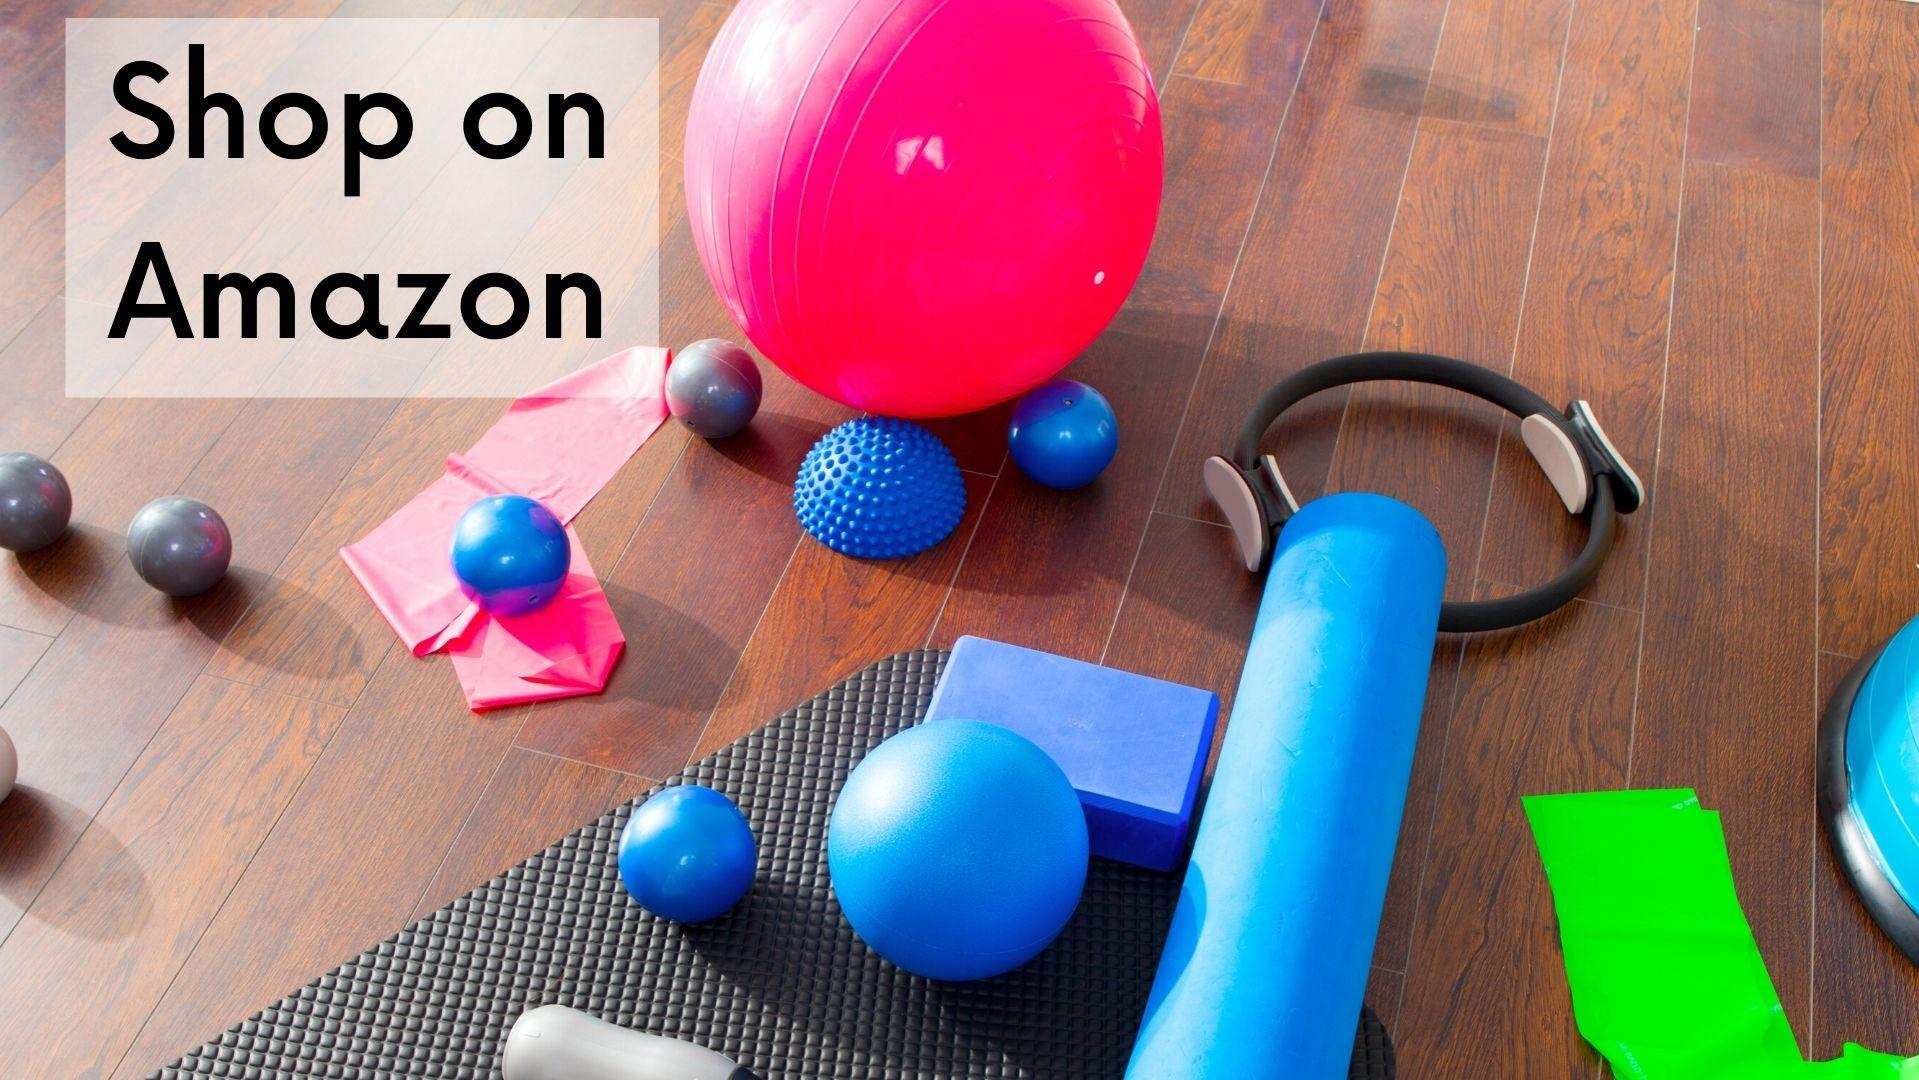 Picture of Pilates props with link to shop on Amazon